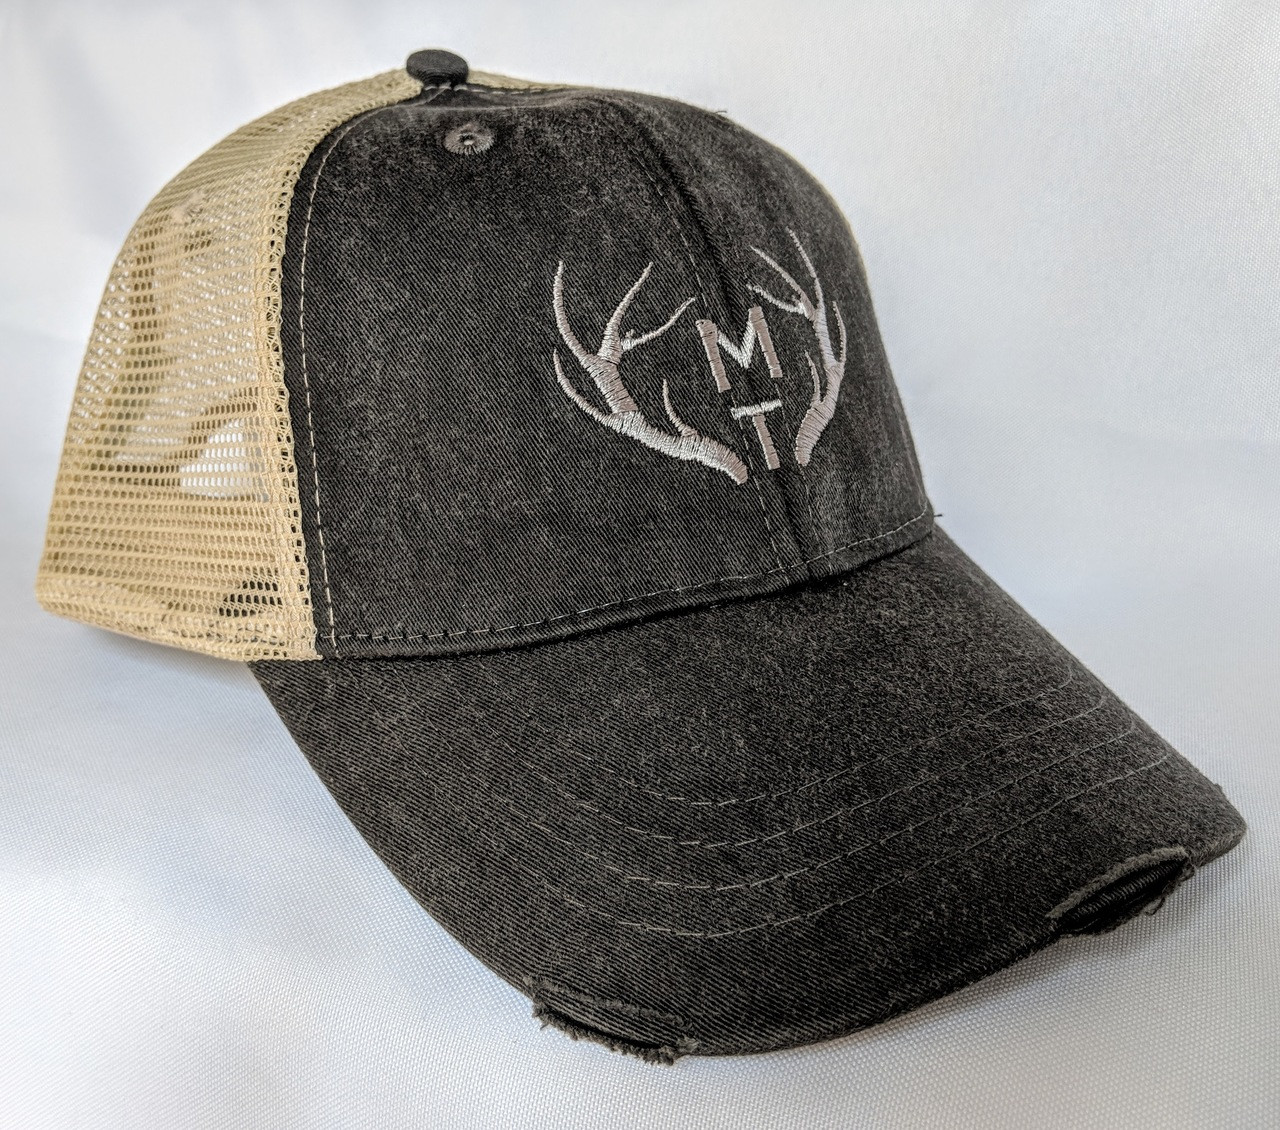 MT Antler Trucker Hat - Adjustable